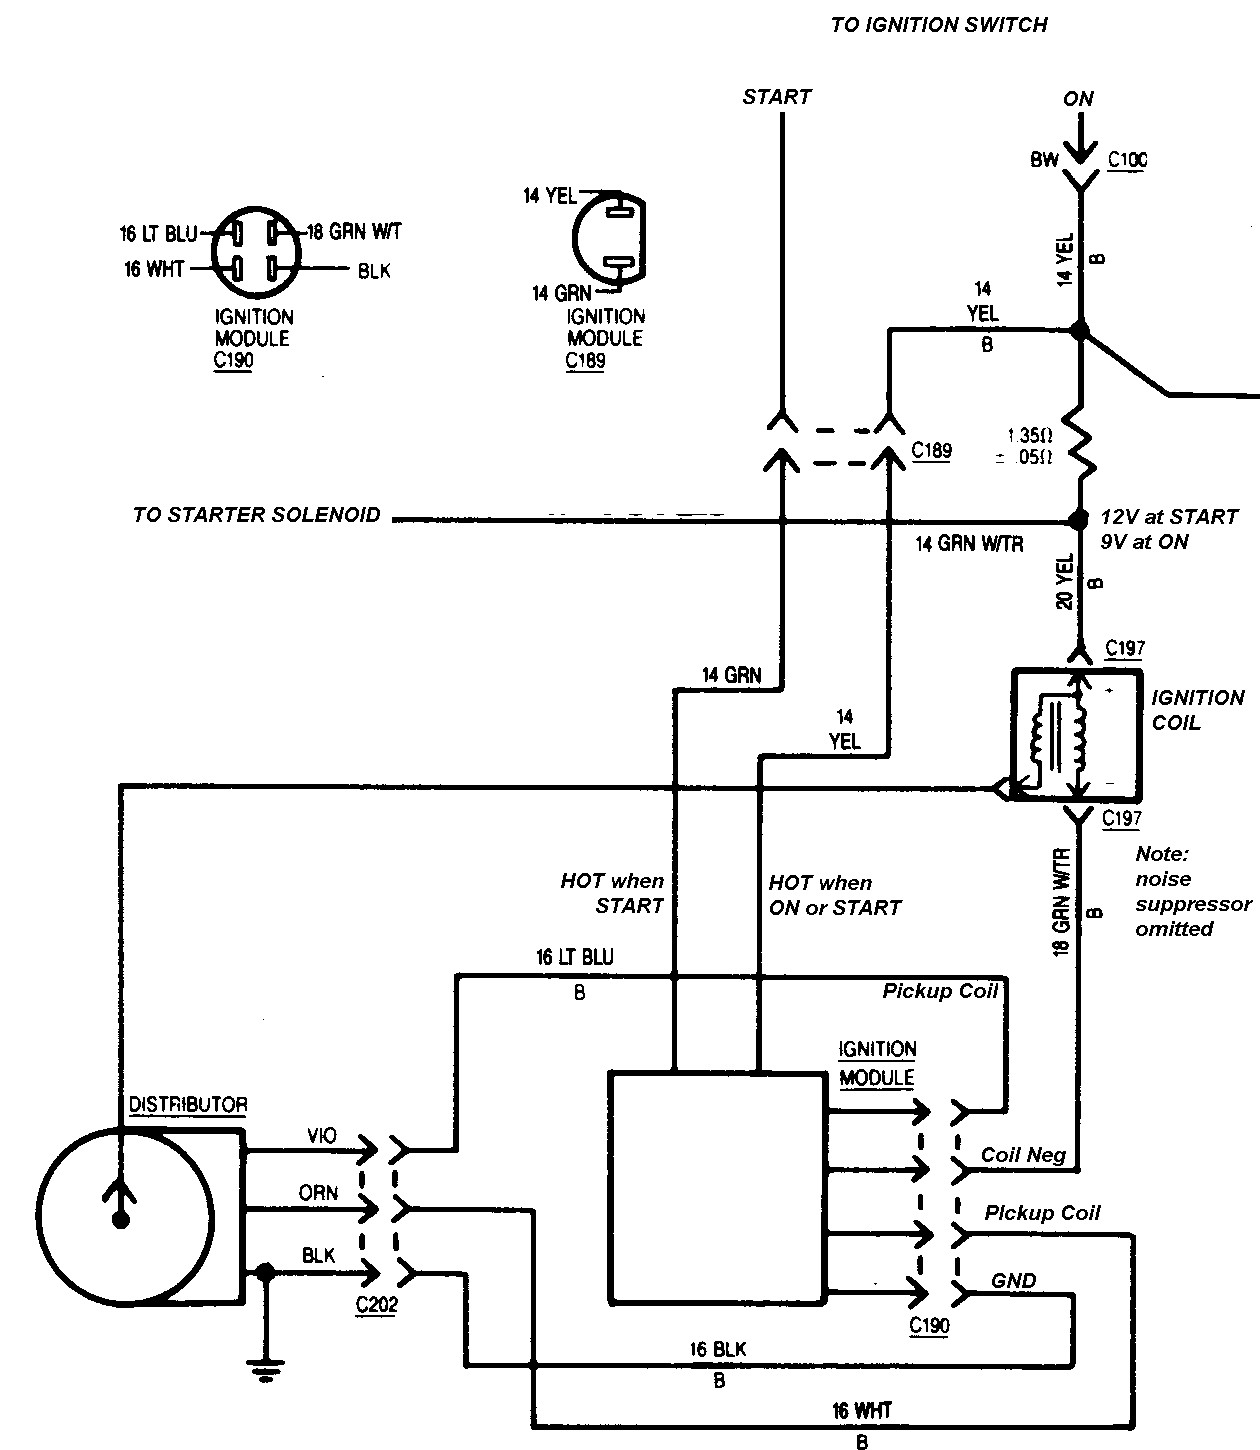 Tbi Ignition Coil Circuit Diagram - All Wiring Diagram